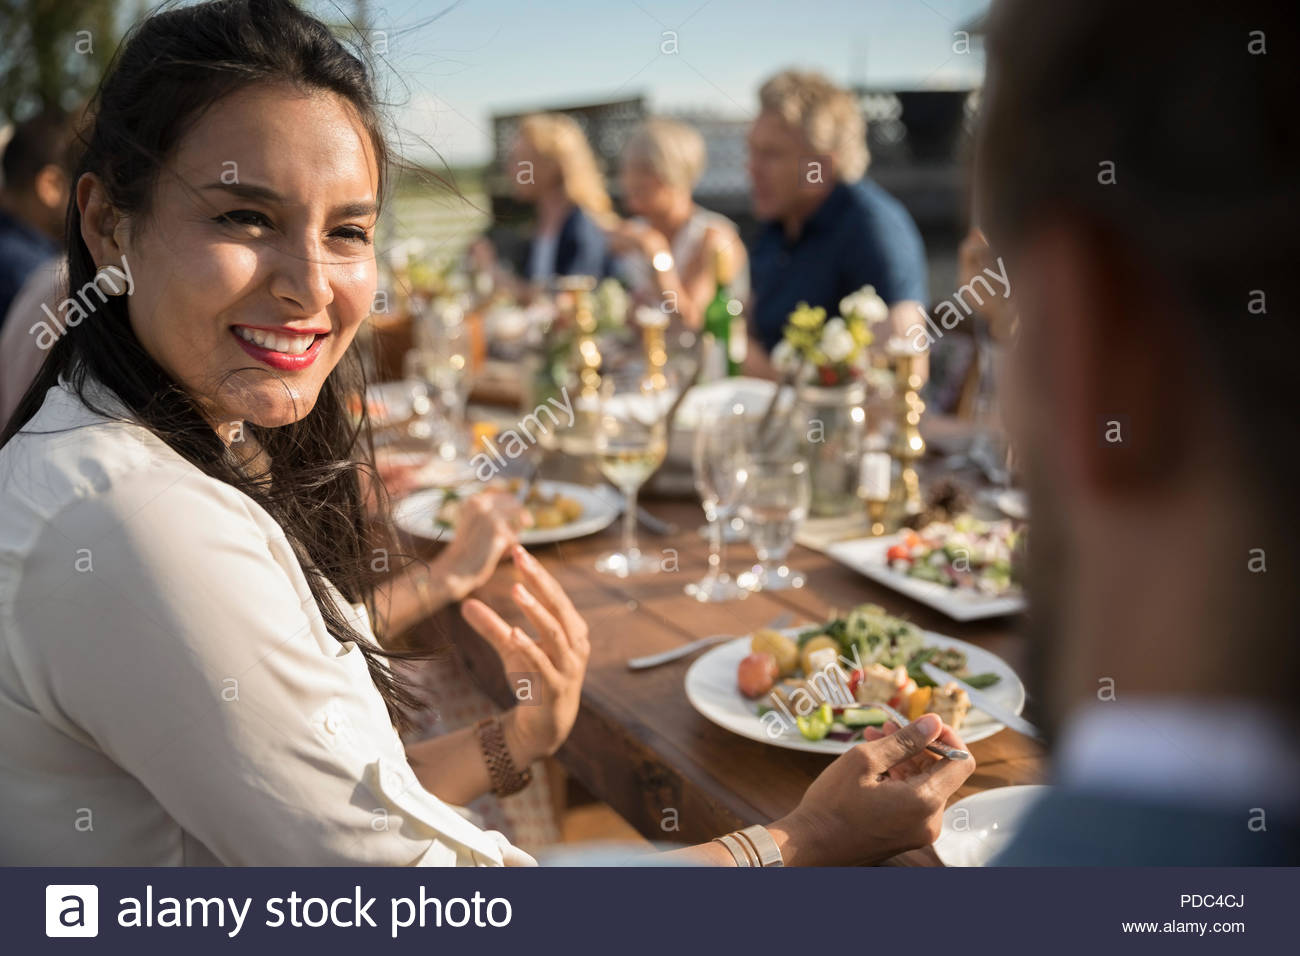 Woman smiling, eating and talking with friend at sunny garden party lunch - Stock Image